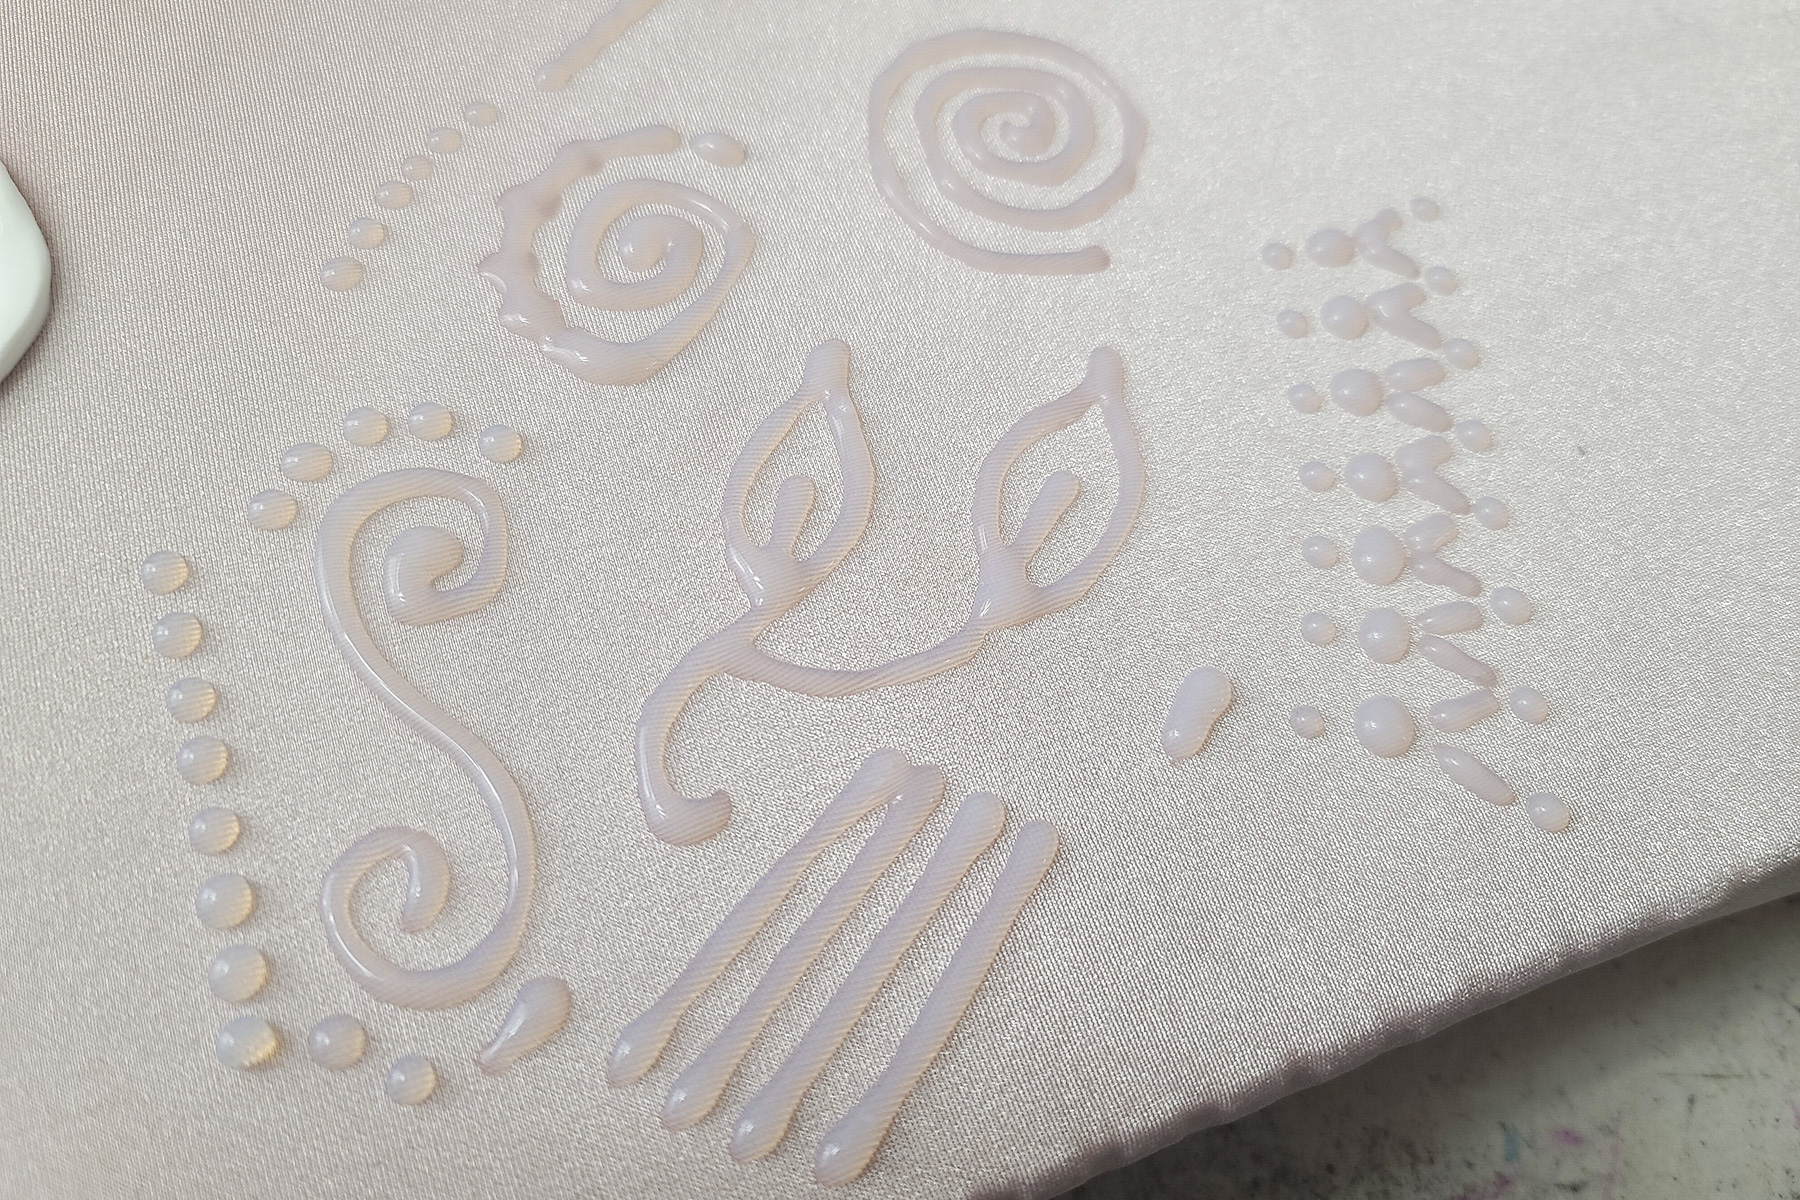 Clear designs piped onto pale pink spandex.